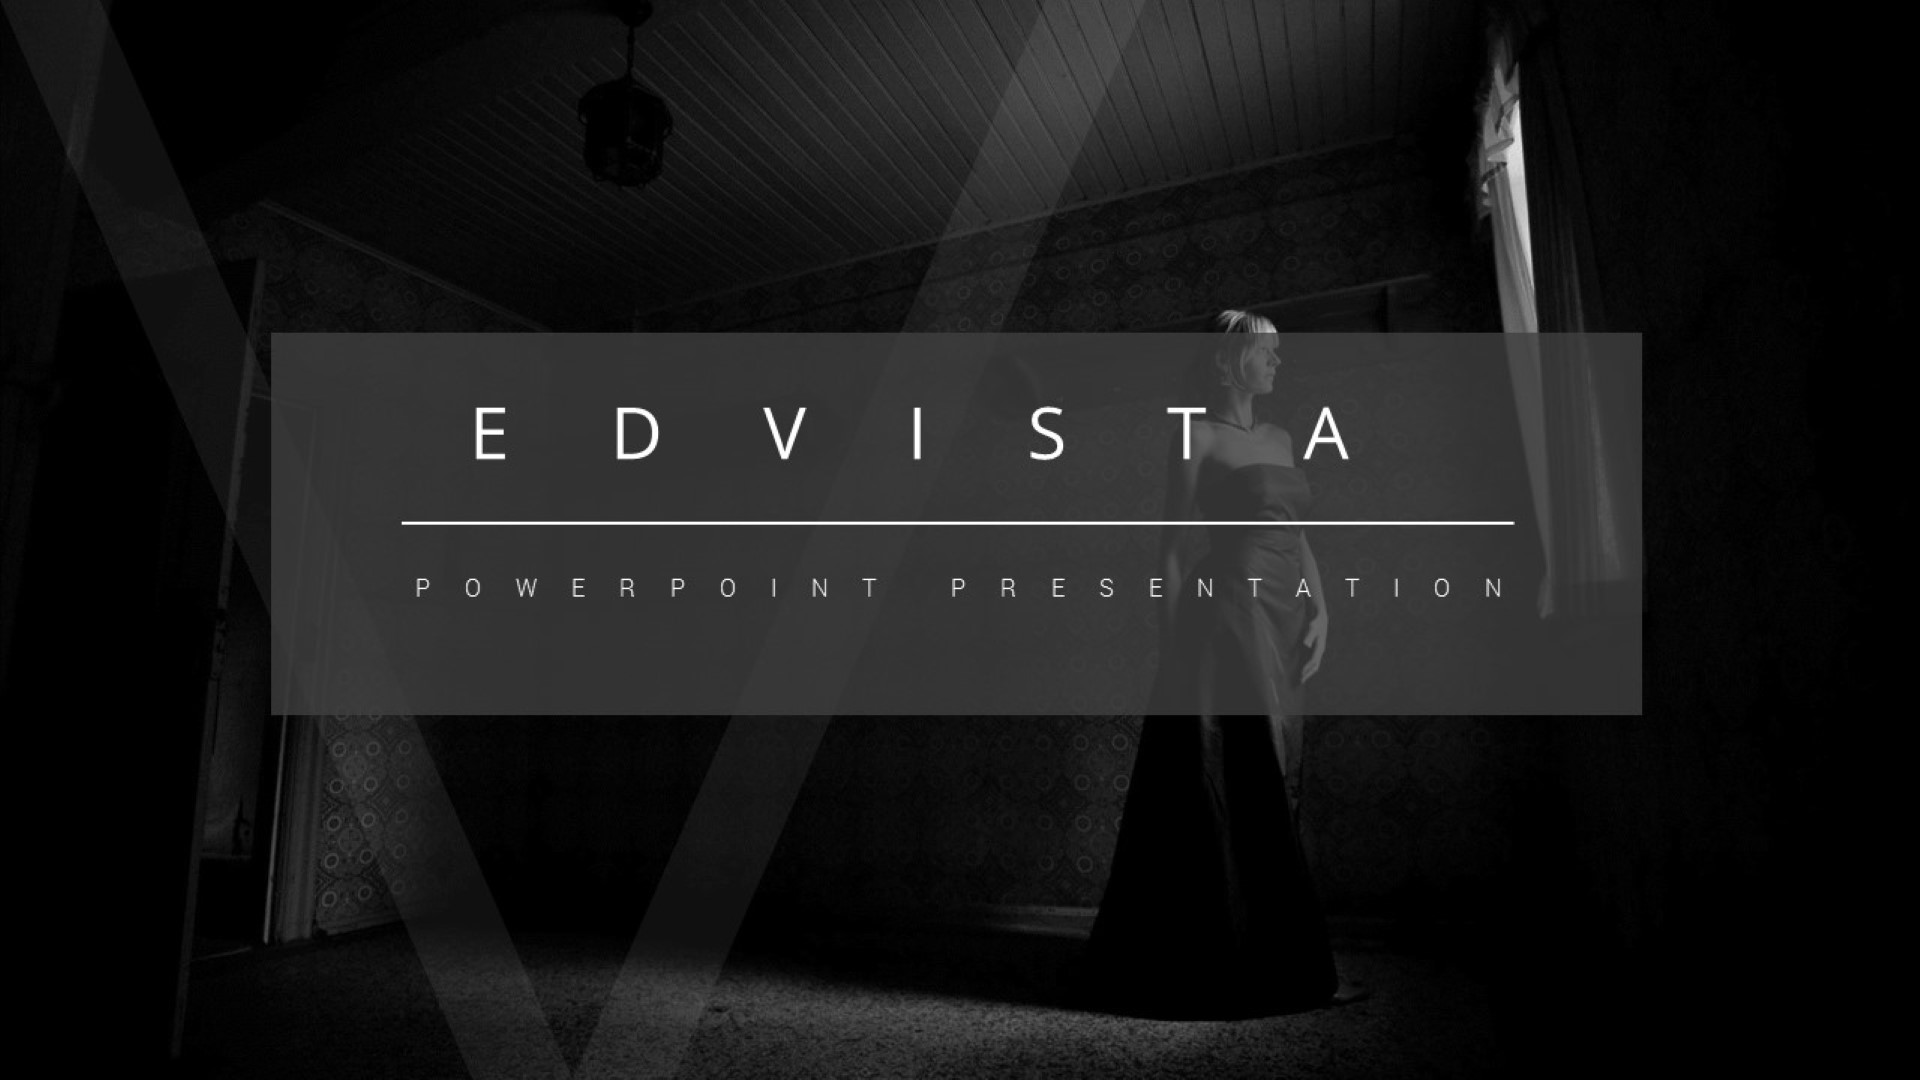 Edvista powerpoint template by inspirasign graphicriver edvista powerpoint template business powerpoint templates edvista image setslide1 toneelgroepblik Image collections